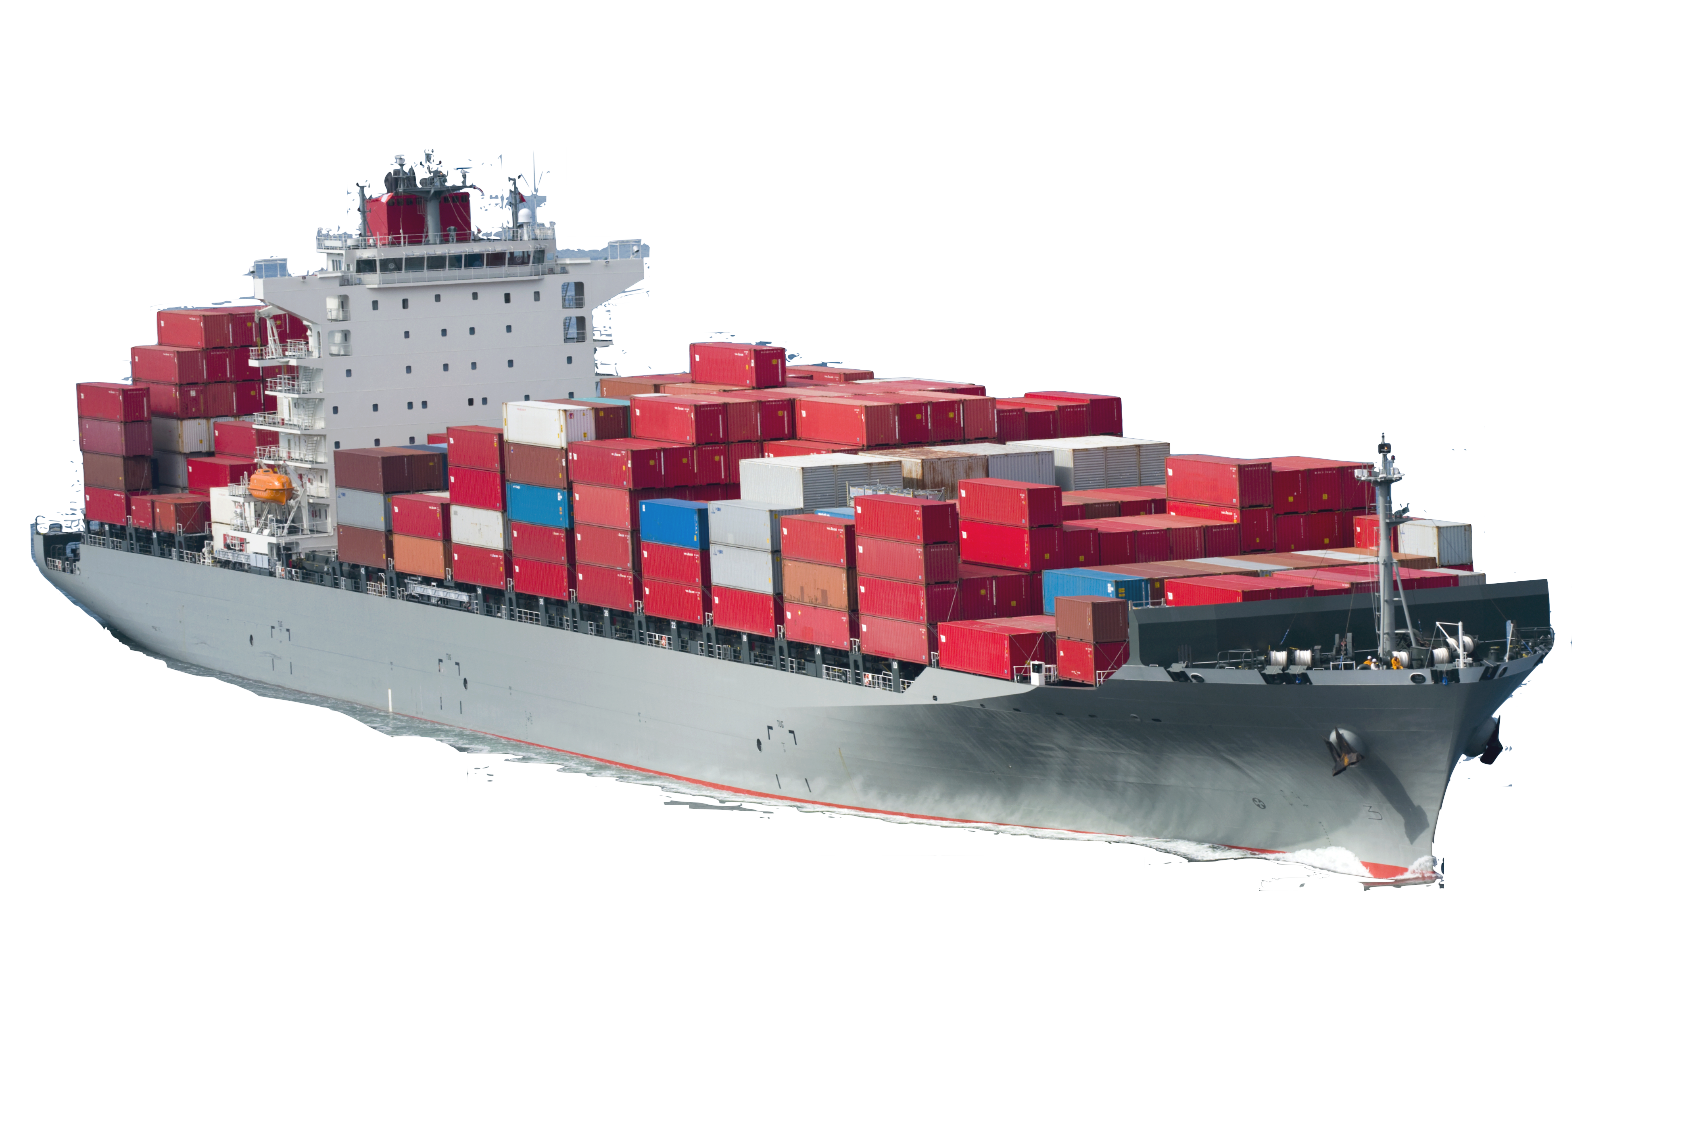 Container ship png. Freight transport forwarding agency